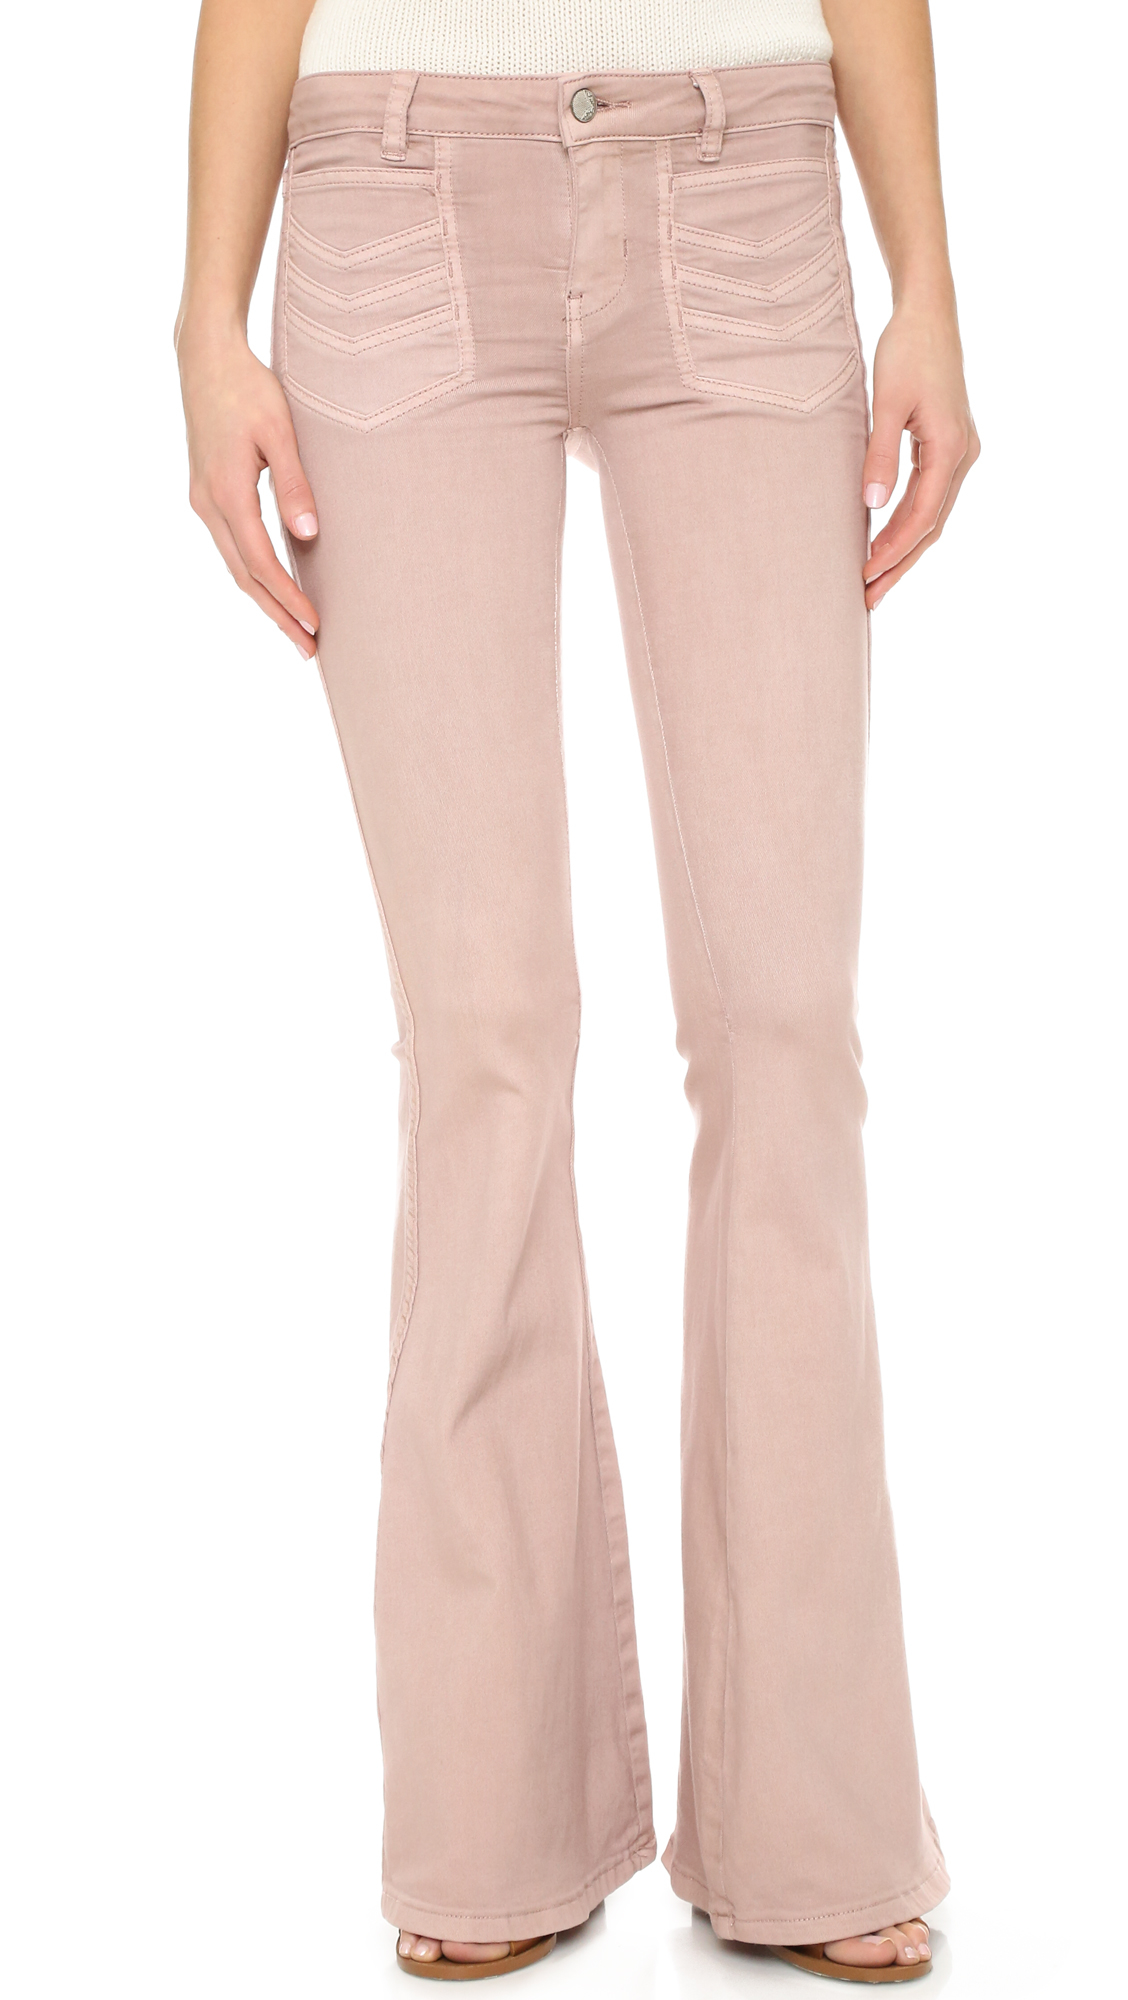 Free people Stella High Rise Flare Jeans in Pink   Lyst